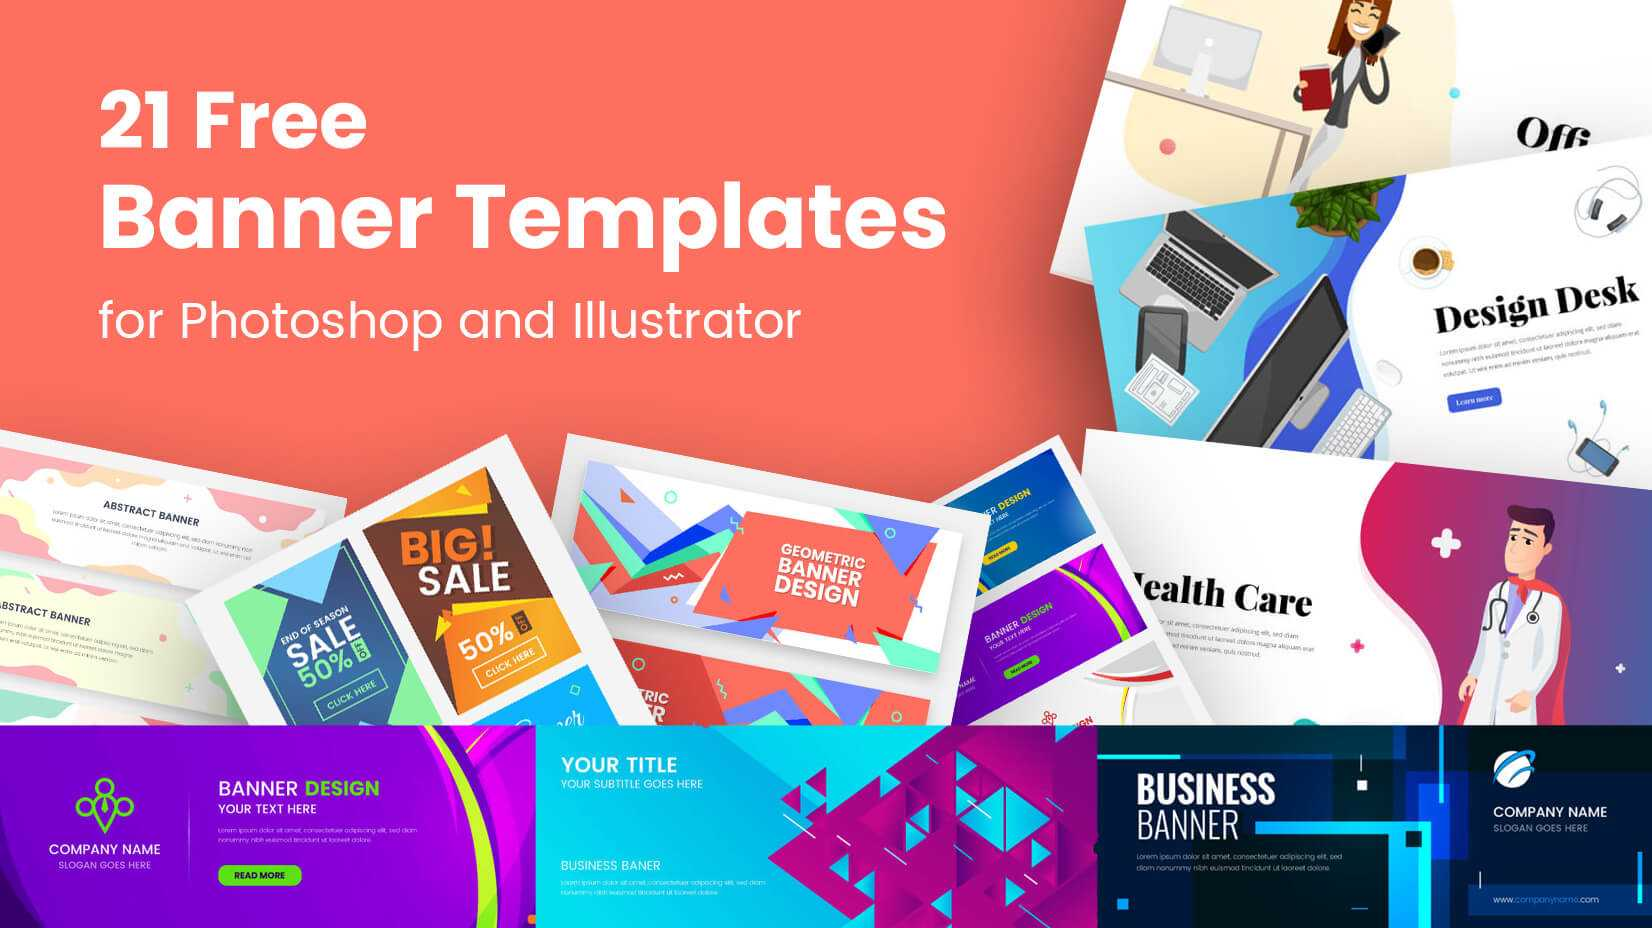 21 Free Banner Templates For Photoshop And Illustrator With Adobe Photoshop Banner Templates